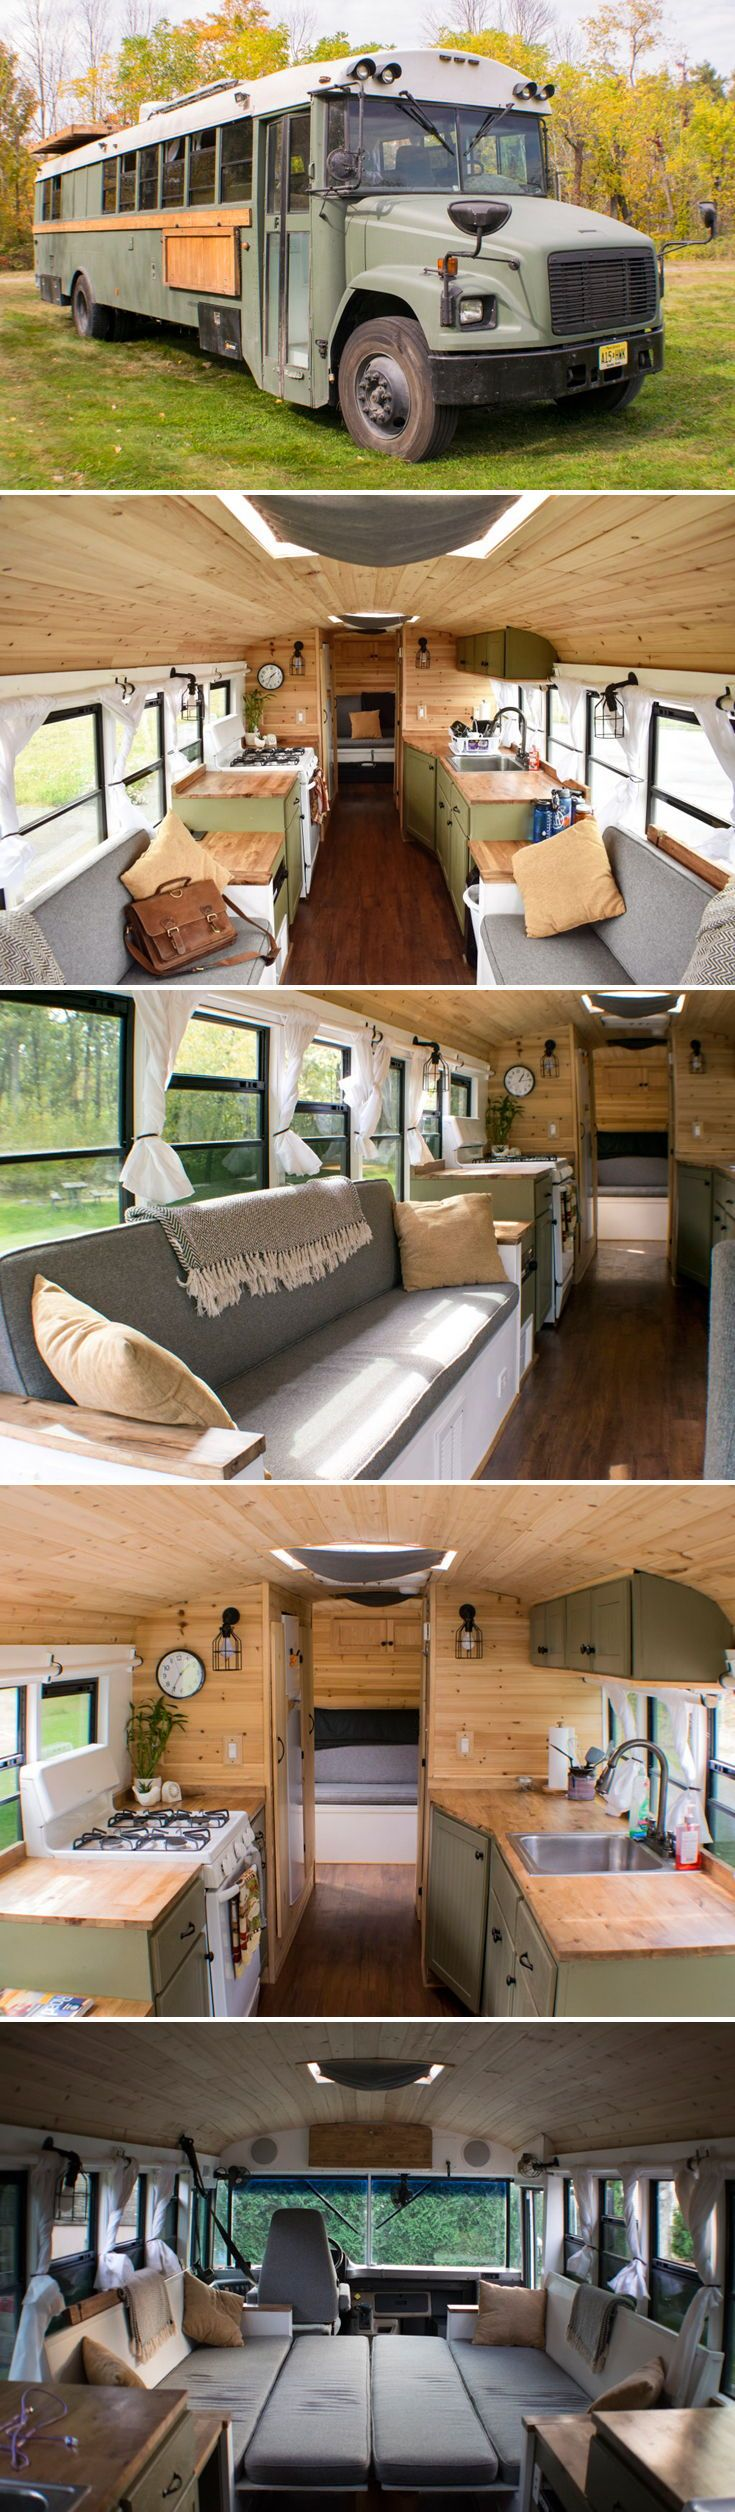 "Meet ""Navi,"" a converted school bus by Michael Fuehrer. Michael bought the 35-foot 2004 Thomas Freightliner for $3,600 and converted it into a tiny home that he uses to travel and enjoy the outdoors."